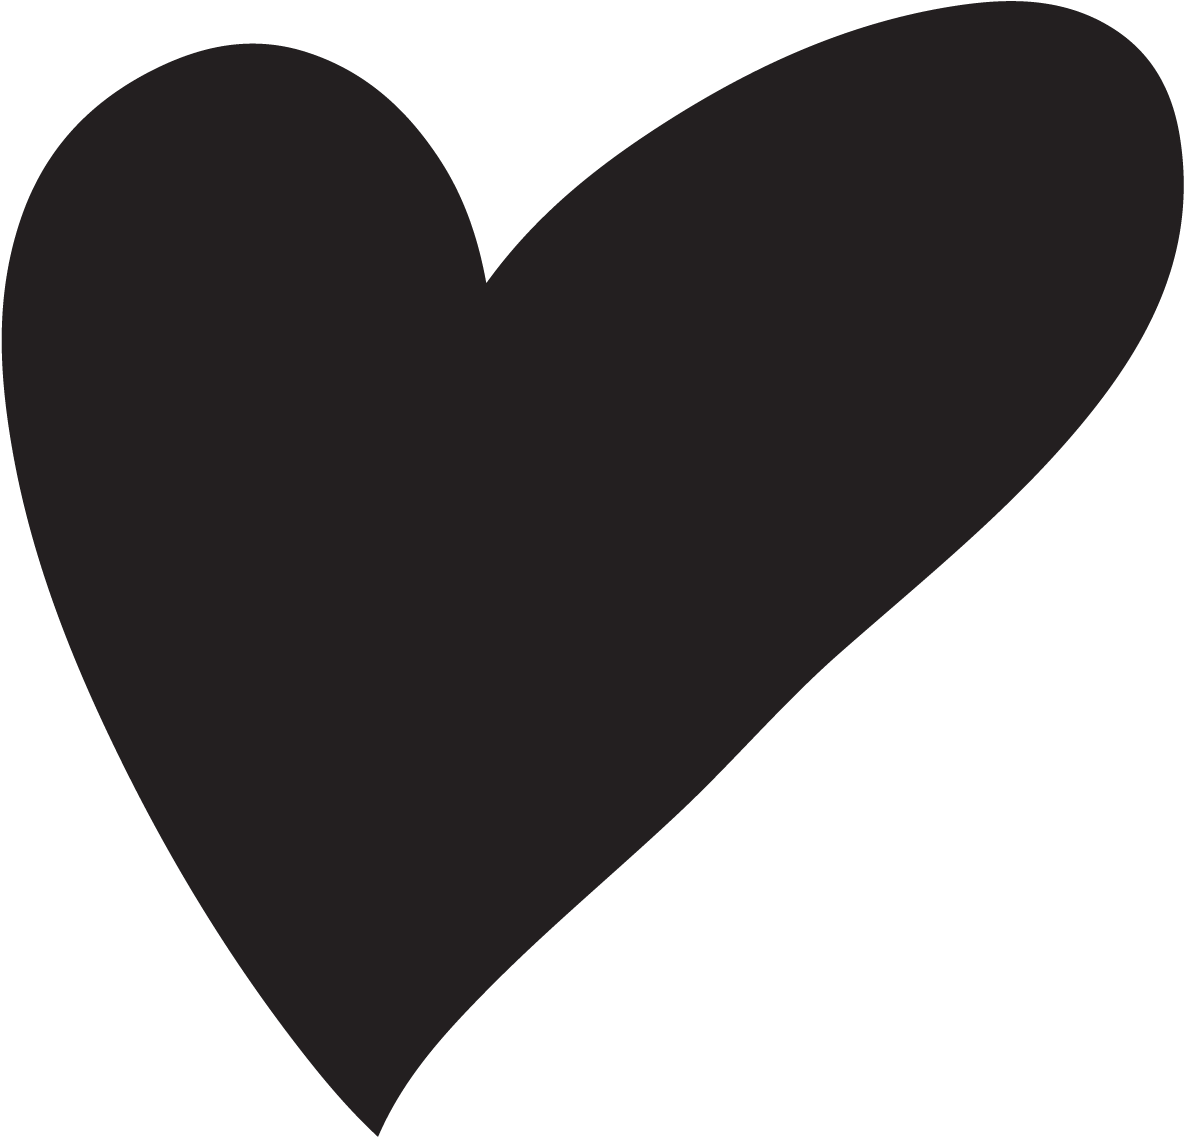 Heart, png hand drawn. Download heart drawing image